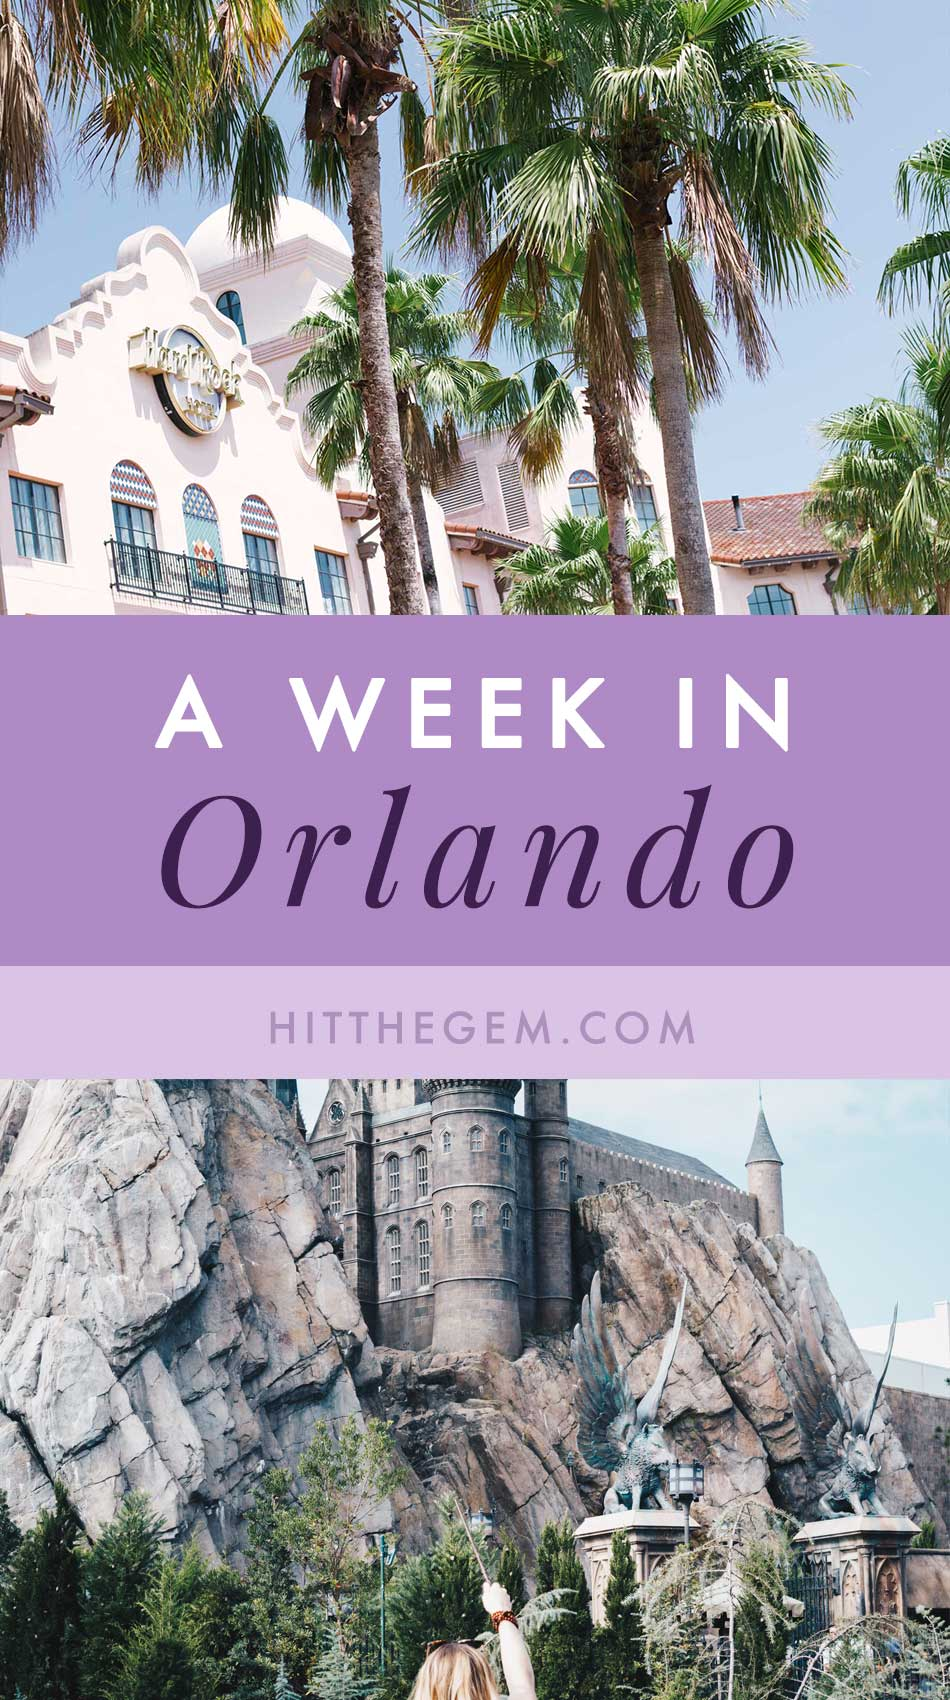 Orlando, Florida is definitely a popular vacation spot, but with so much to do, it can be difficult to plan. I thought it would be fun to share the details of my week-long Orlando vacation to offer some tips and advice about what is and possibly isn't worth visiting. One thing's for sure: you need to visit Orlando!